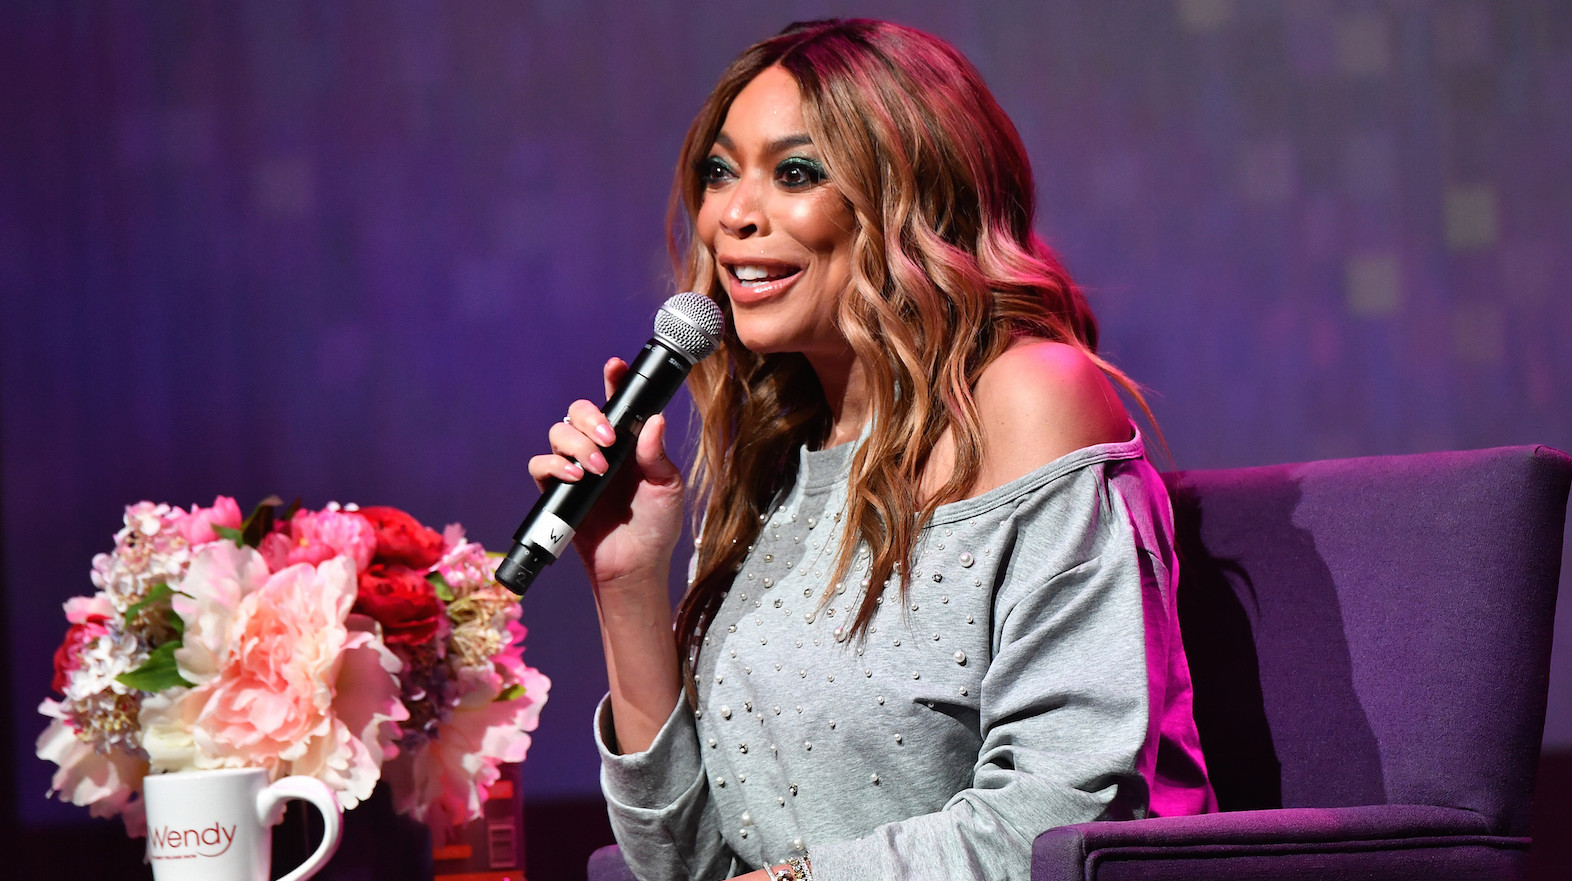 Wendy Williams Is Back And Looking Fabulous With A New Hairdo - Watch The Videos - Fans Cannot Wait To Hear Her Opinion On The Tristan-Jordyn-Khloe Subject